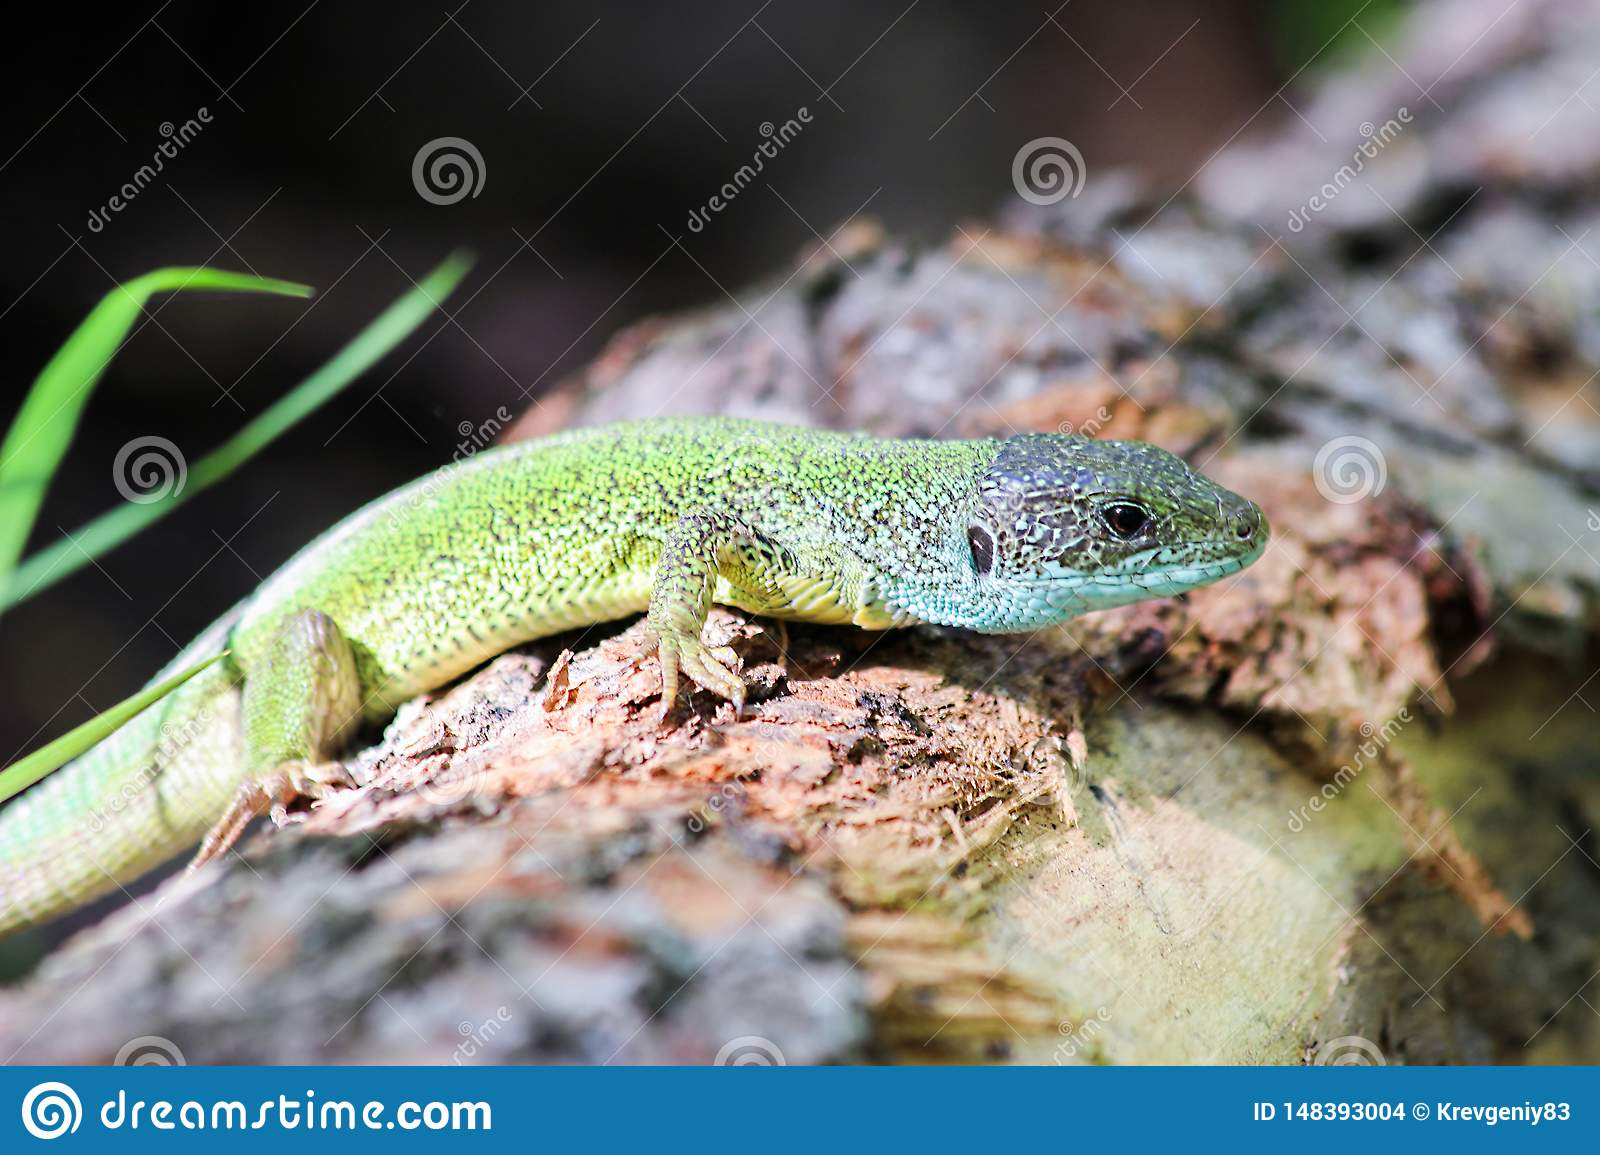 Lizard in the spring forest on a log